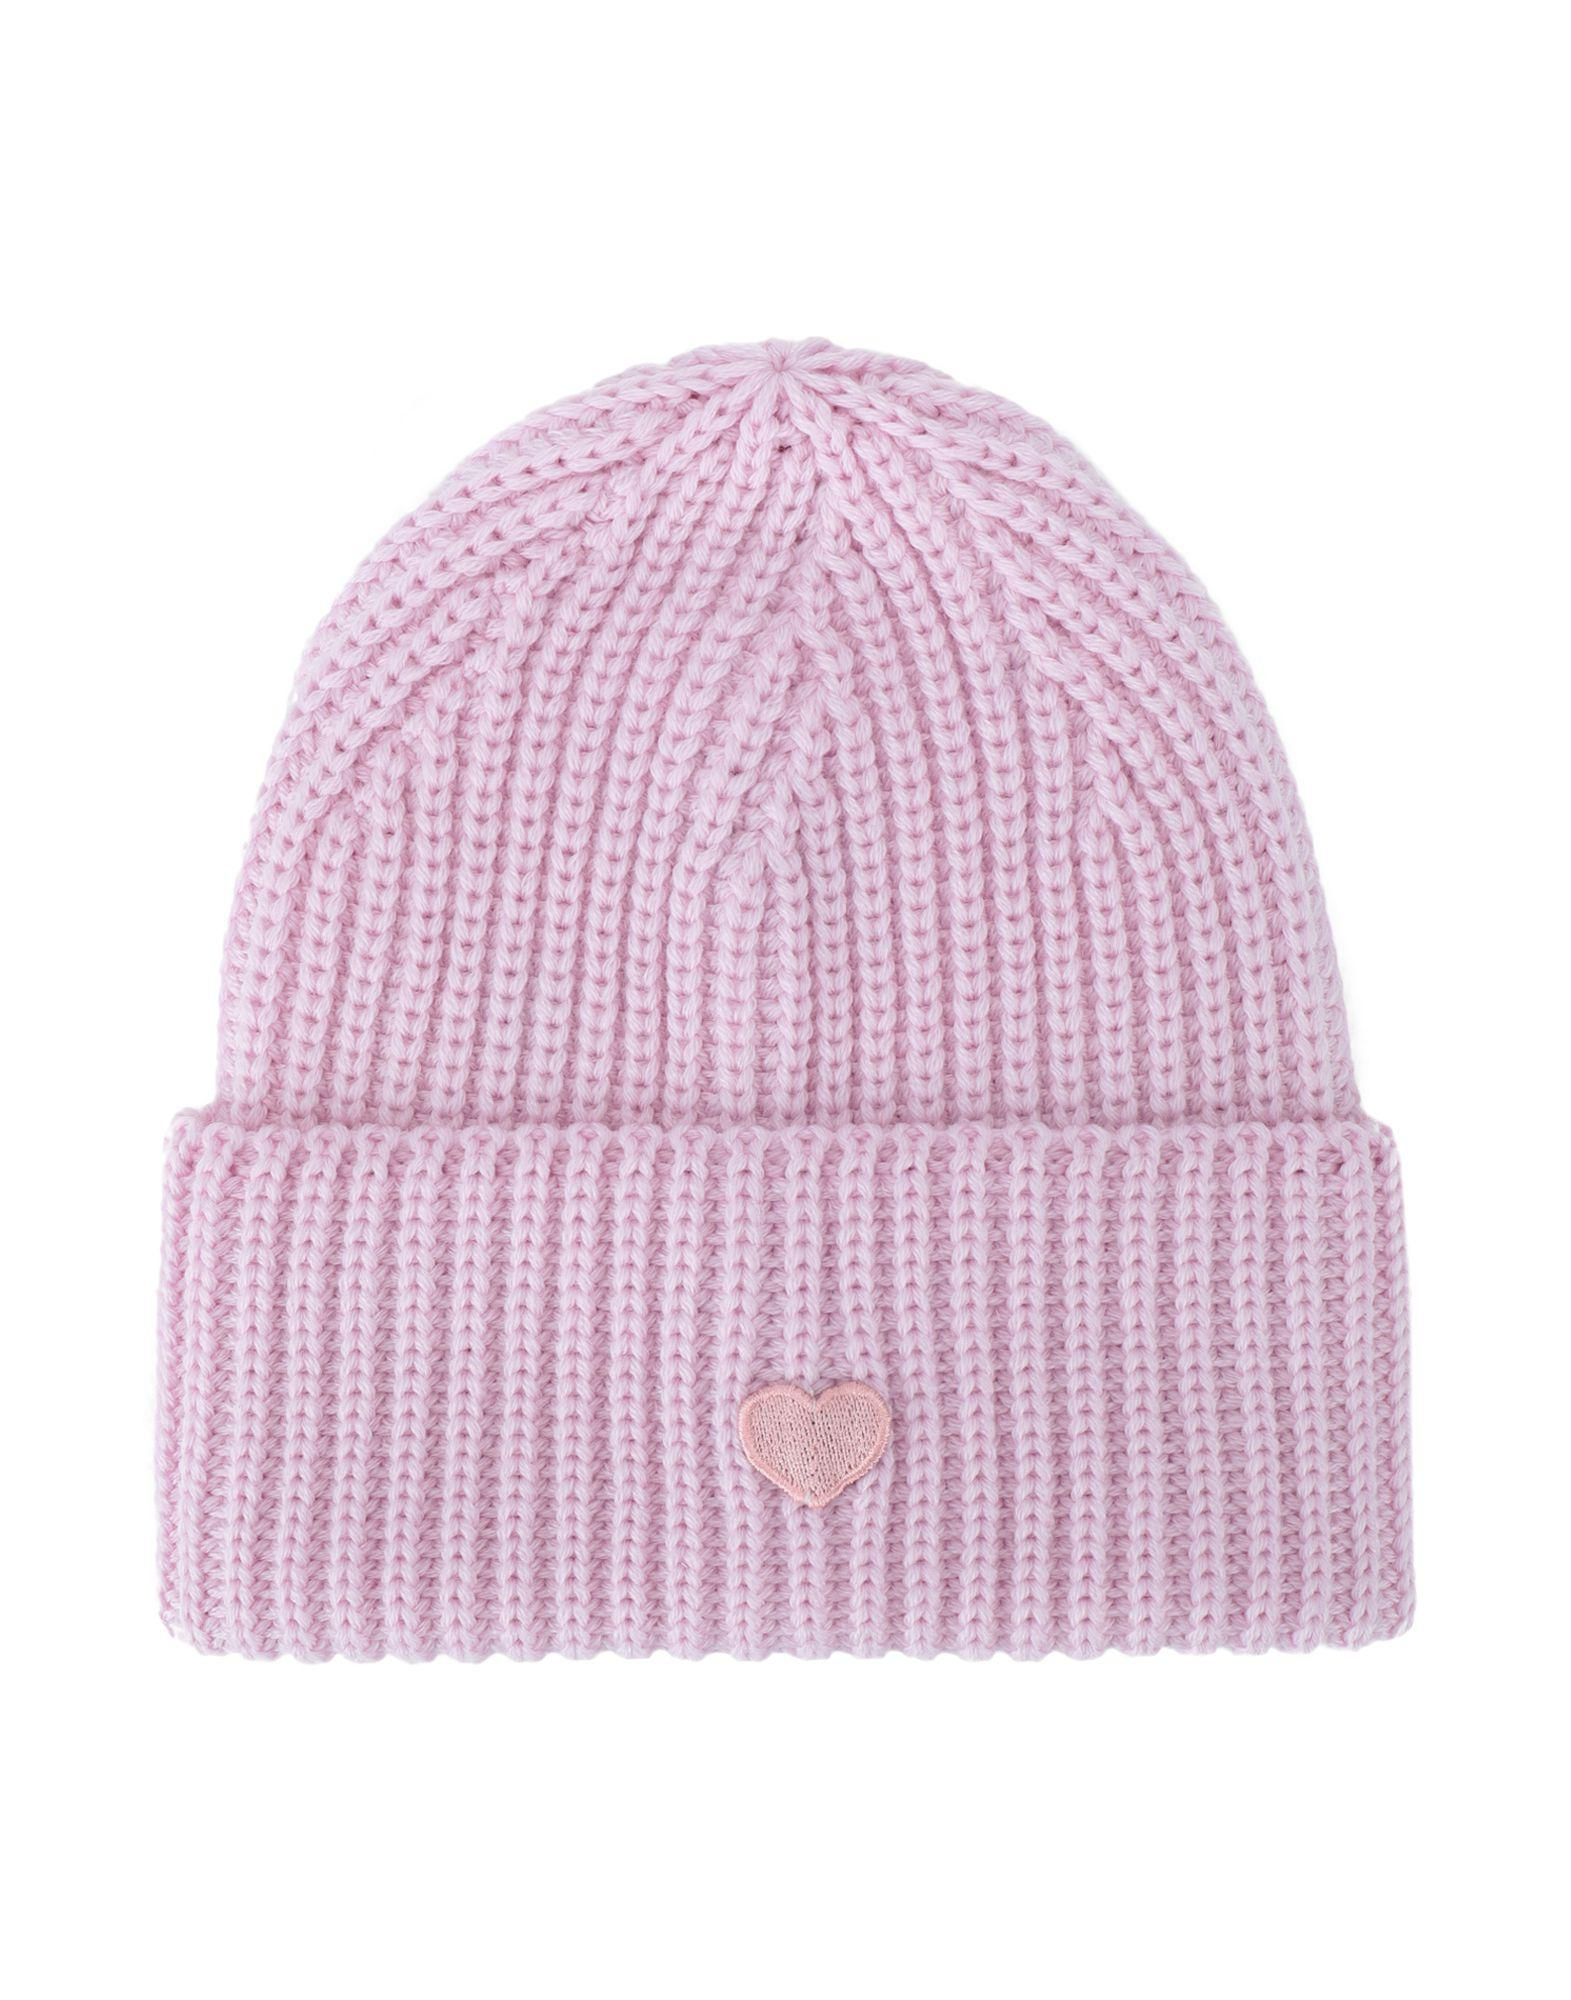 86922c090d3 Lyst - Federica Moretti Hat in Pink - Save 7%